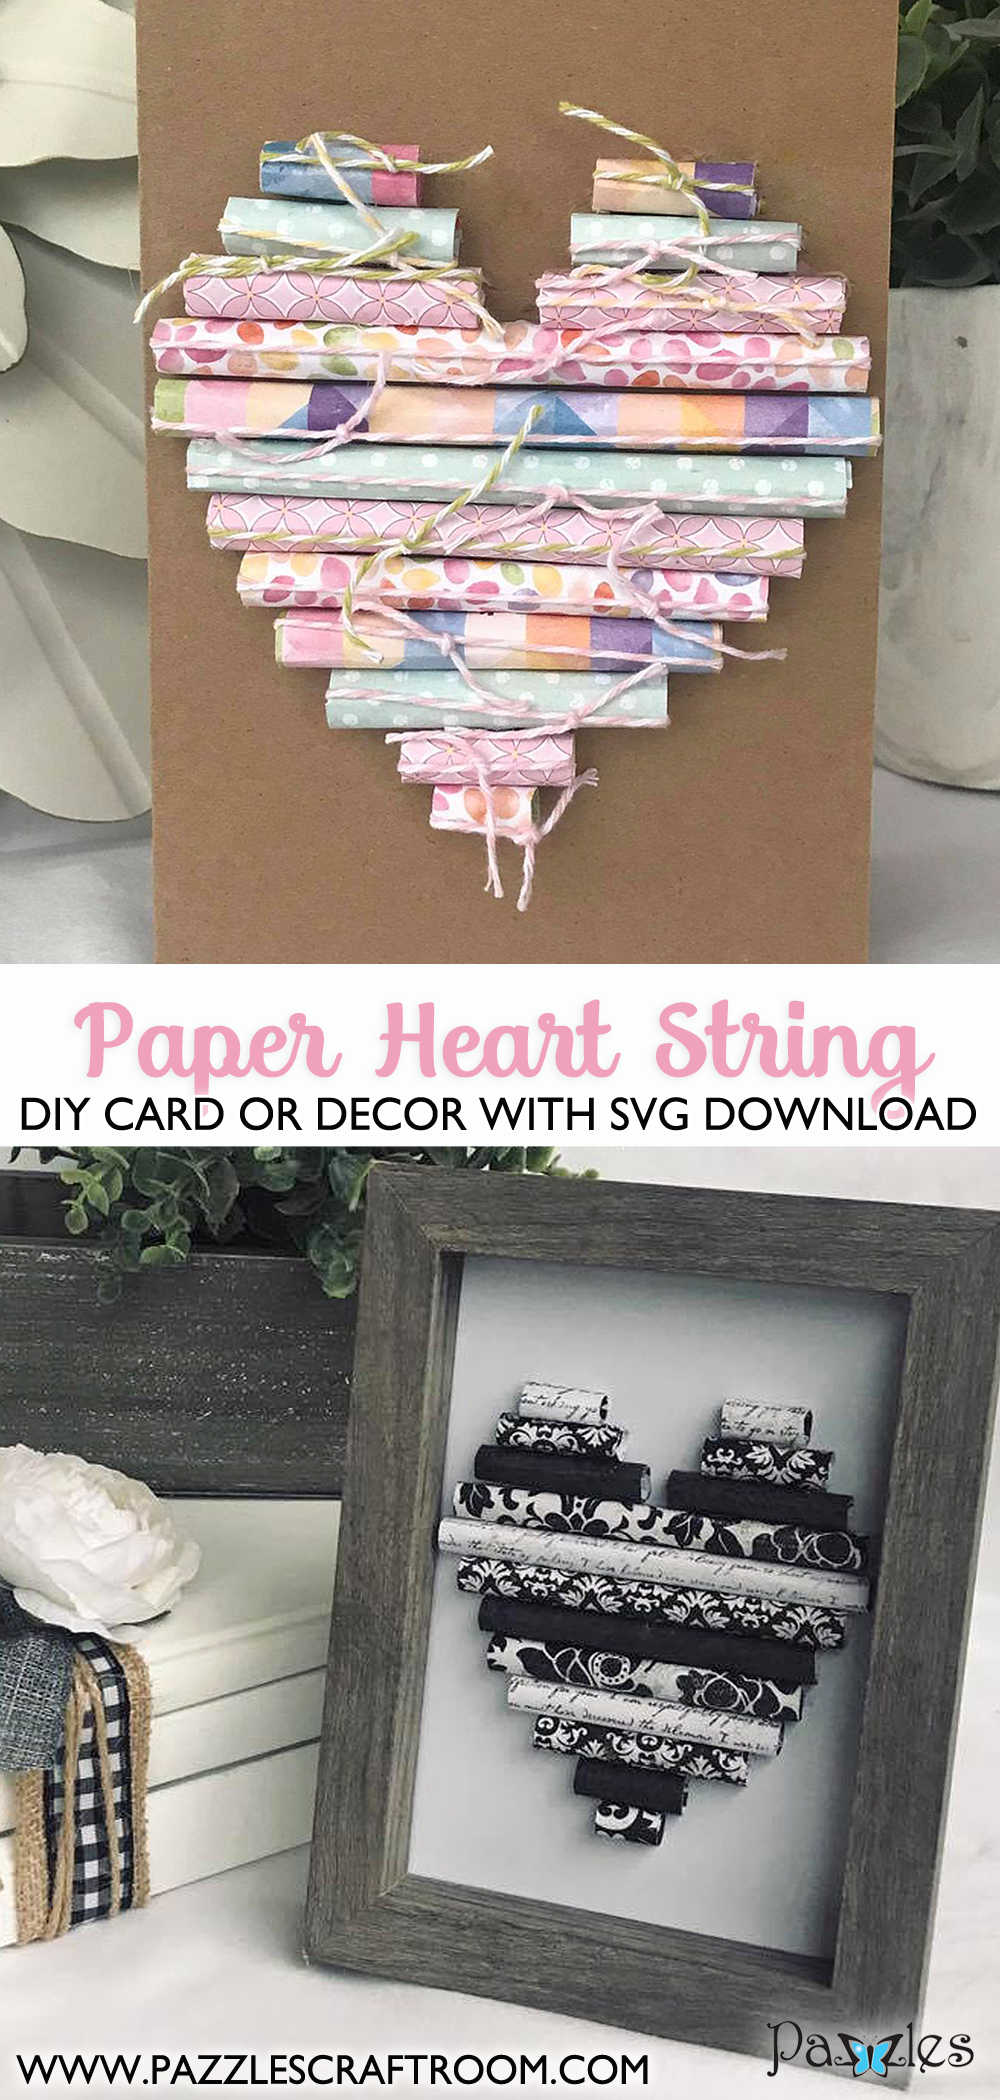 Pazzles DIY Paper Heart Strings Card or Decor.  Instant SVG download compatible with all major electronic cutters including Pazzles Inspiration, Cricut, and Silhouette Cameo. Design by Leslie Peppers.